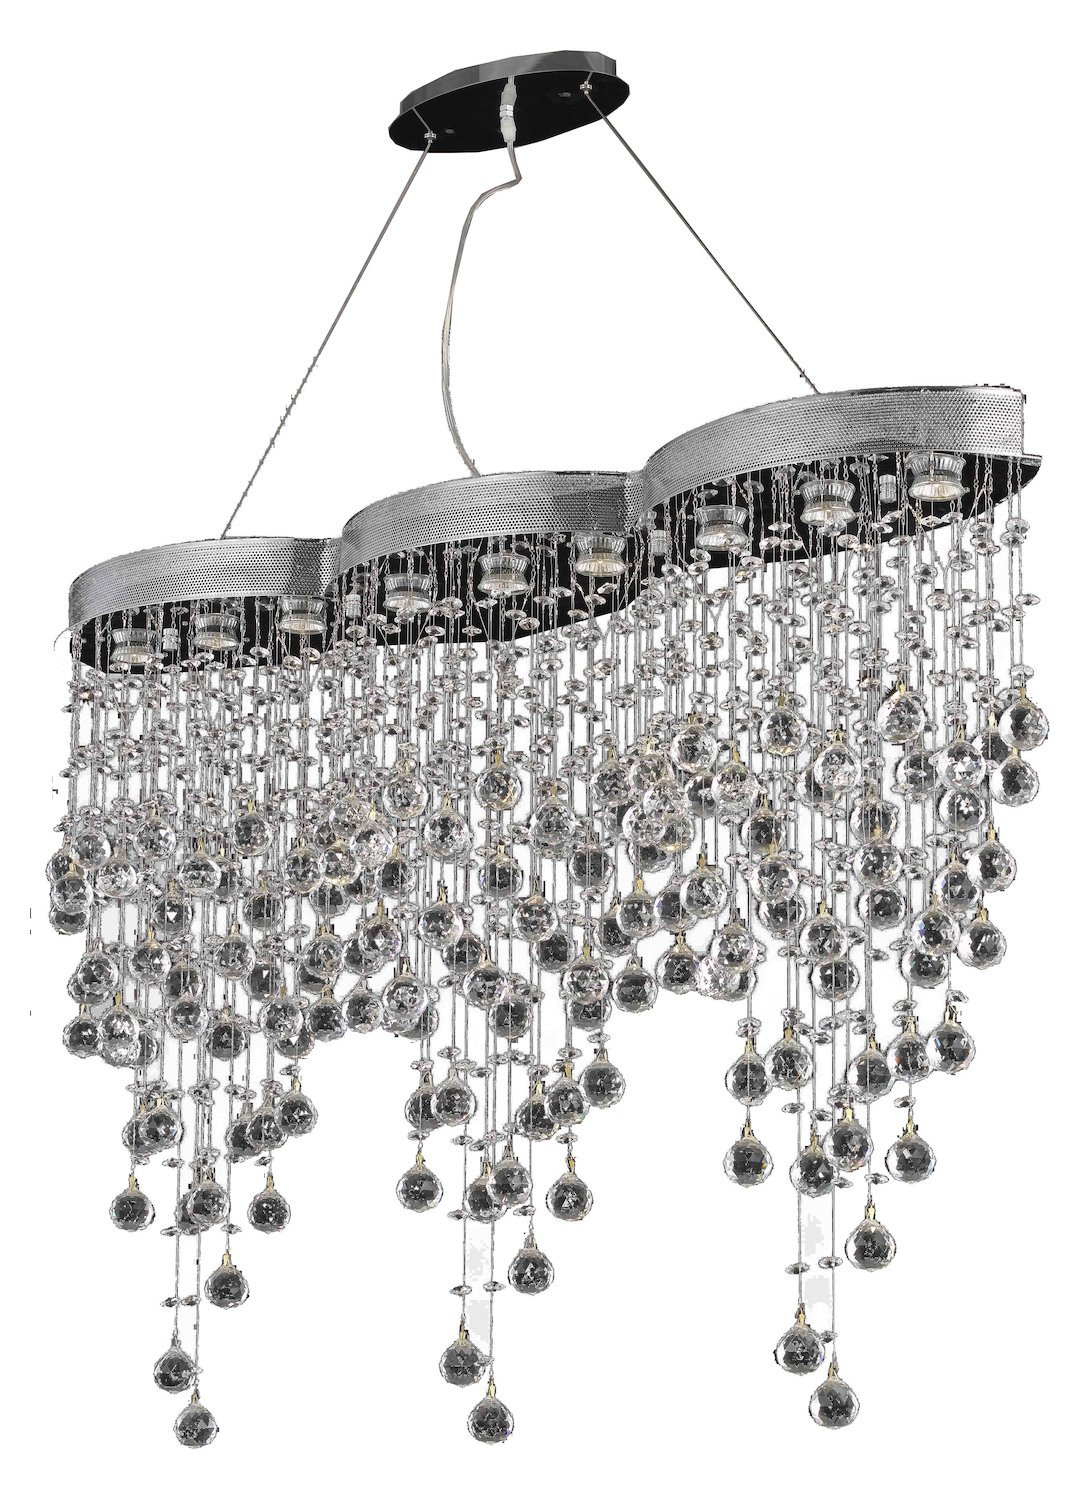 Galaxy Collection 9-Light Chrome Fix With Clear Swarovski Spectra Crystal by Elegant Lighting